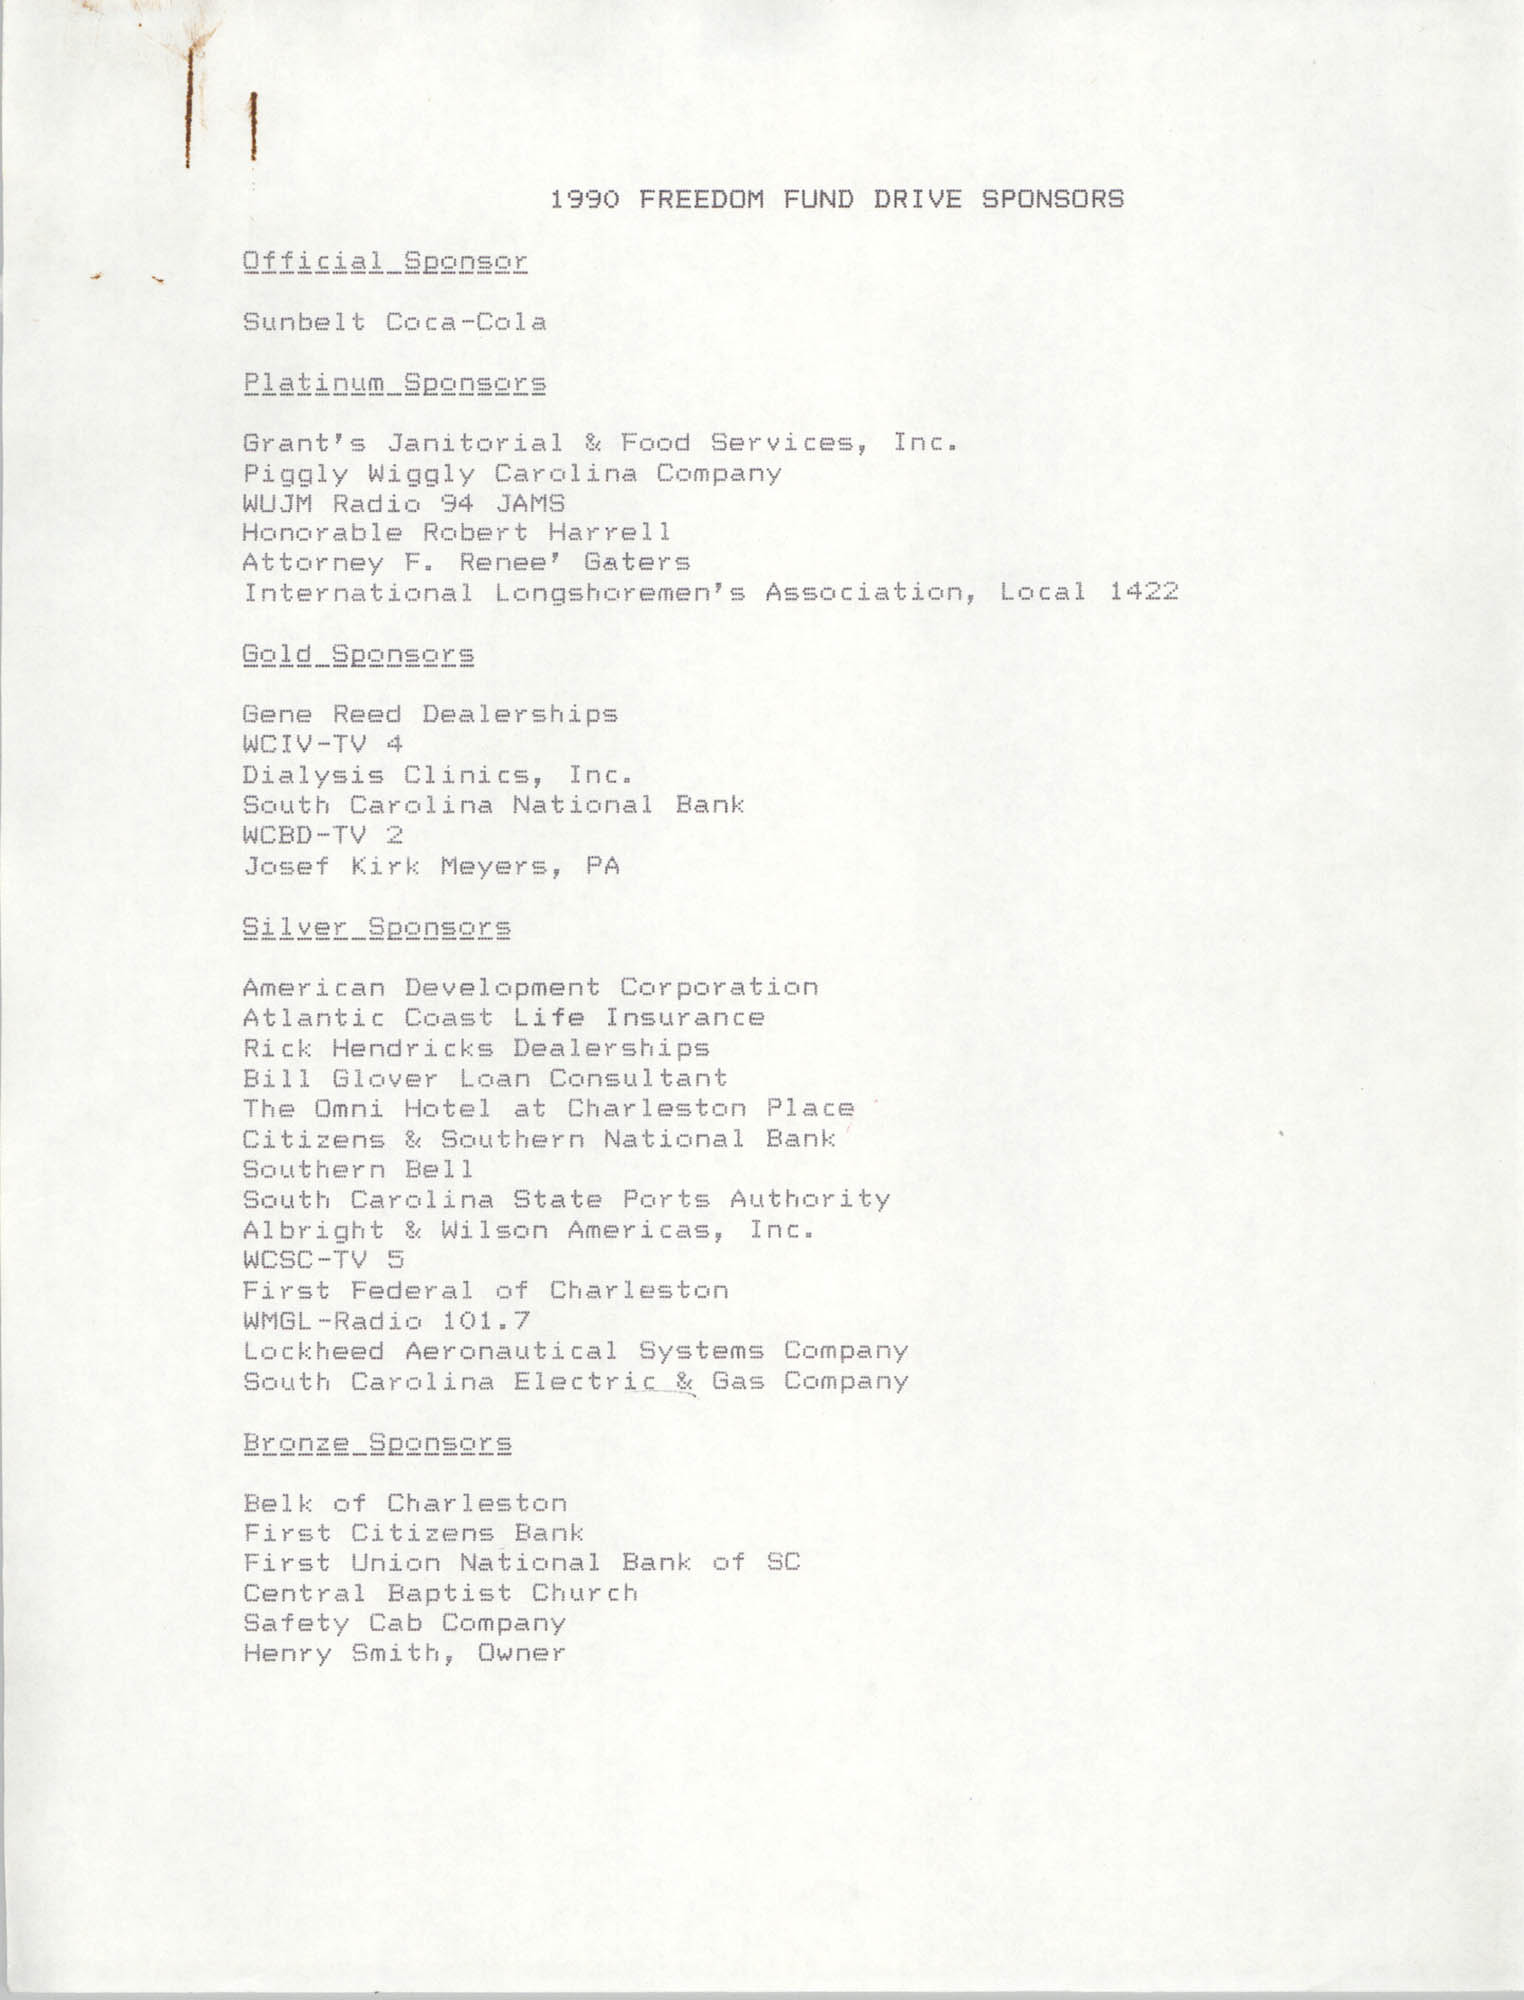 List of 1990 Freedom Fund Drive Sponsors